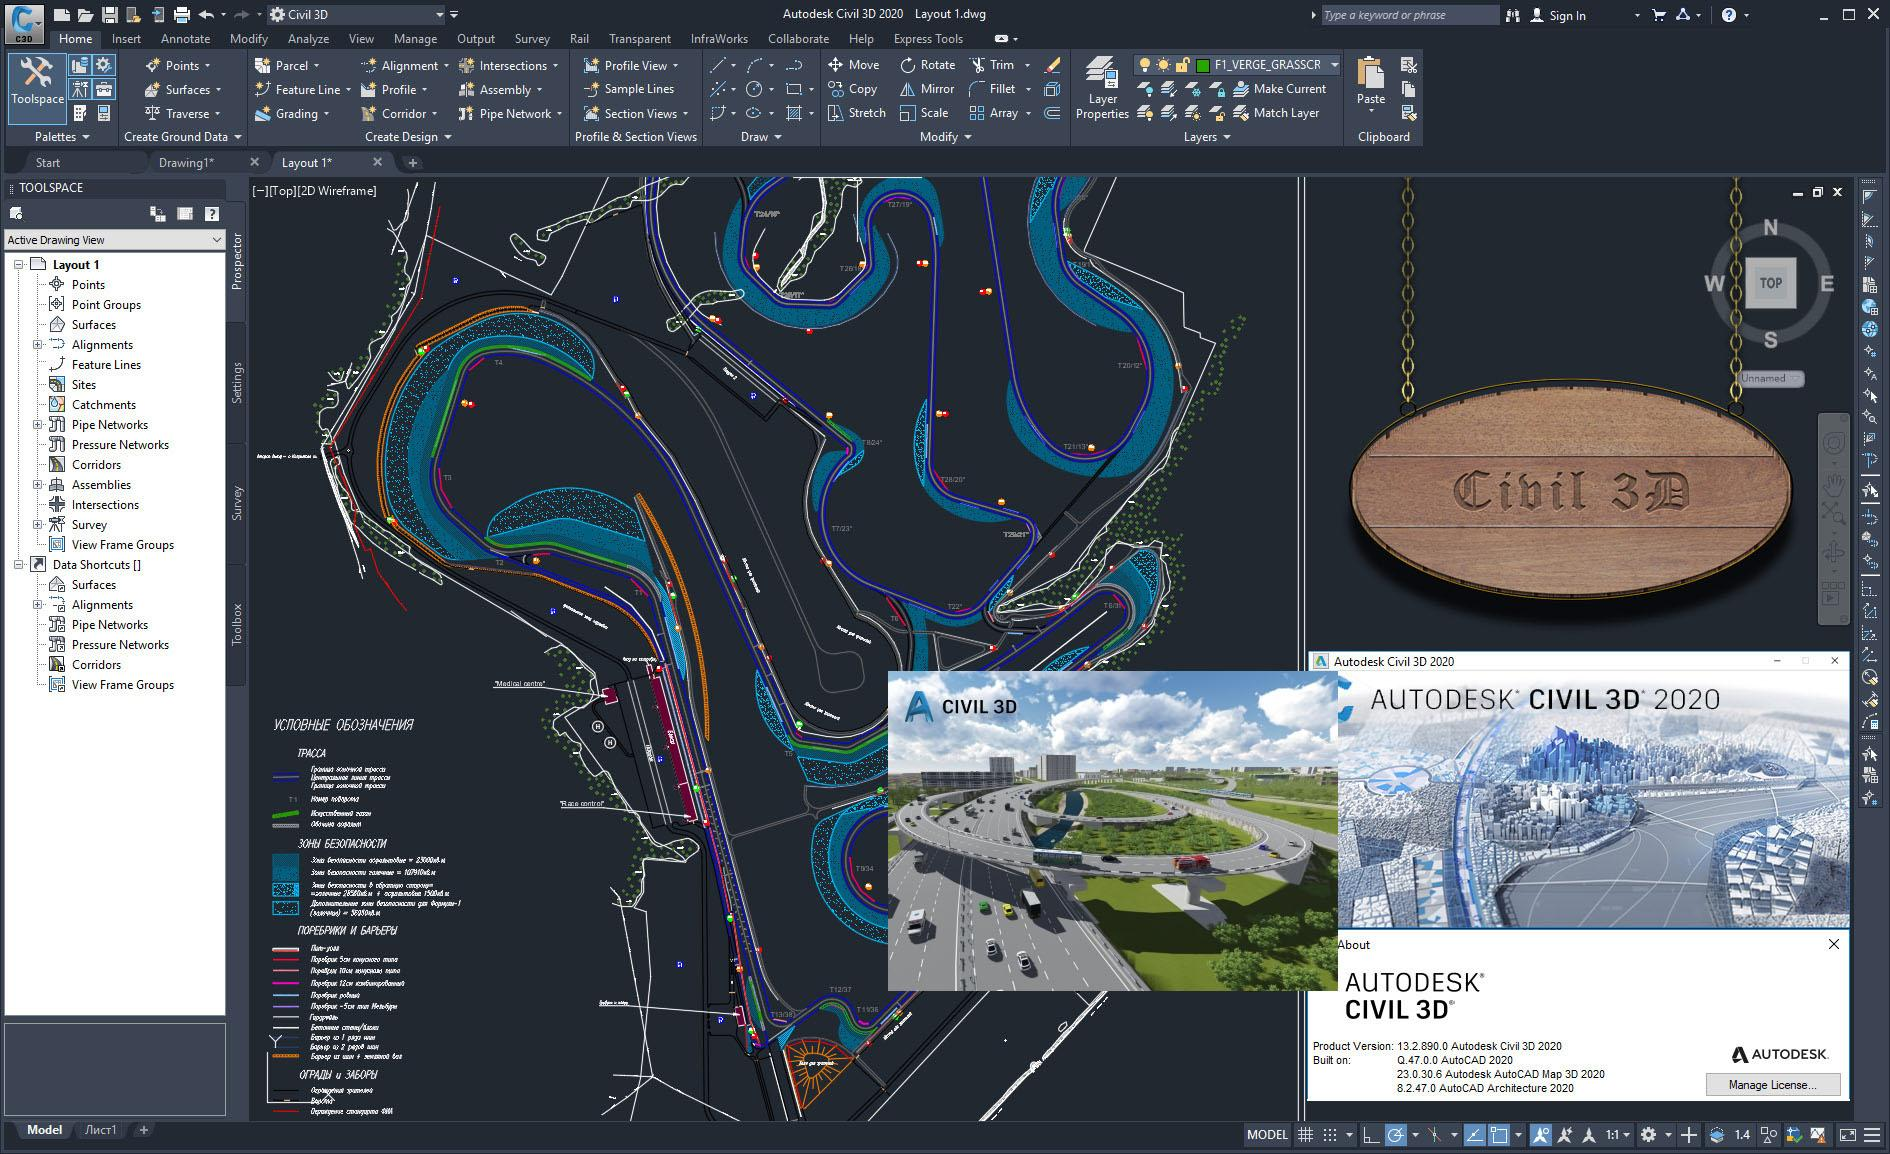 How much is AutoCAD Map 3D 2020 software?